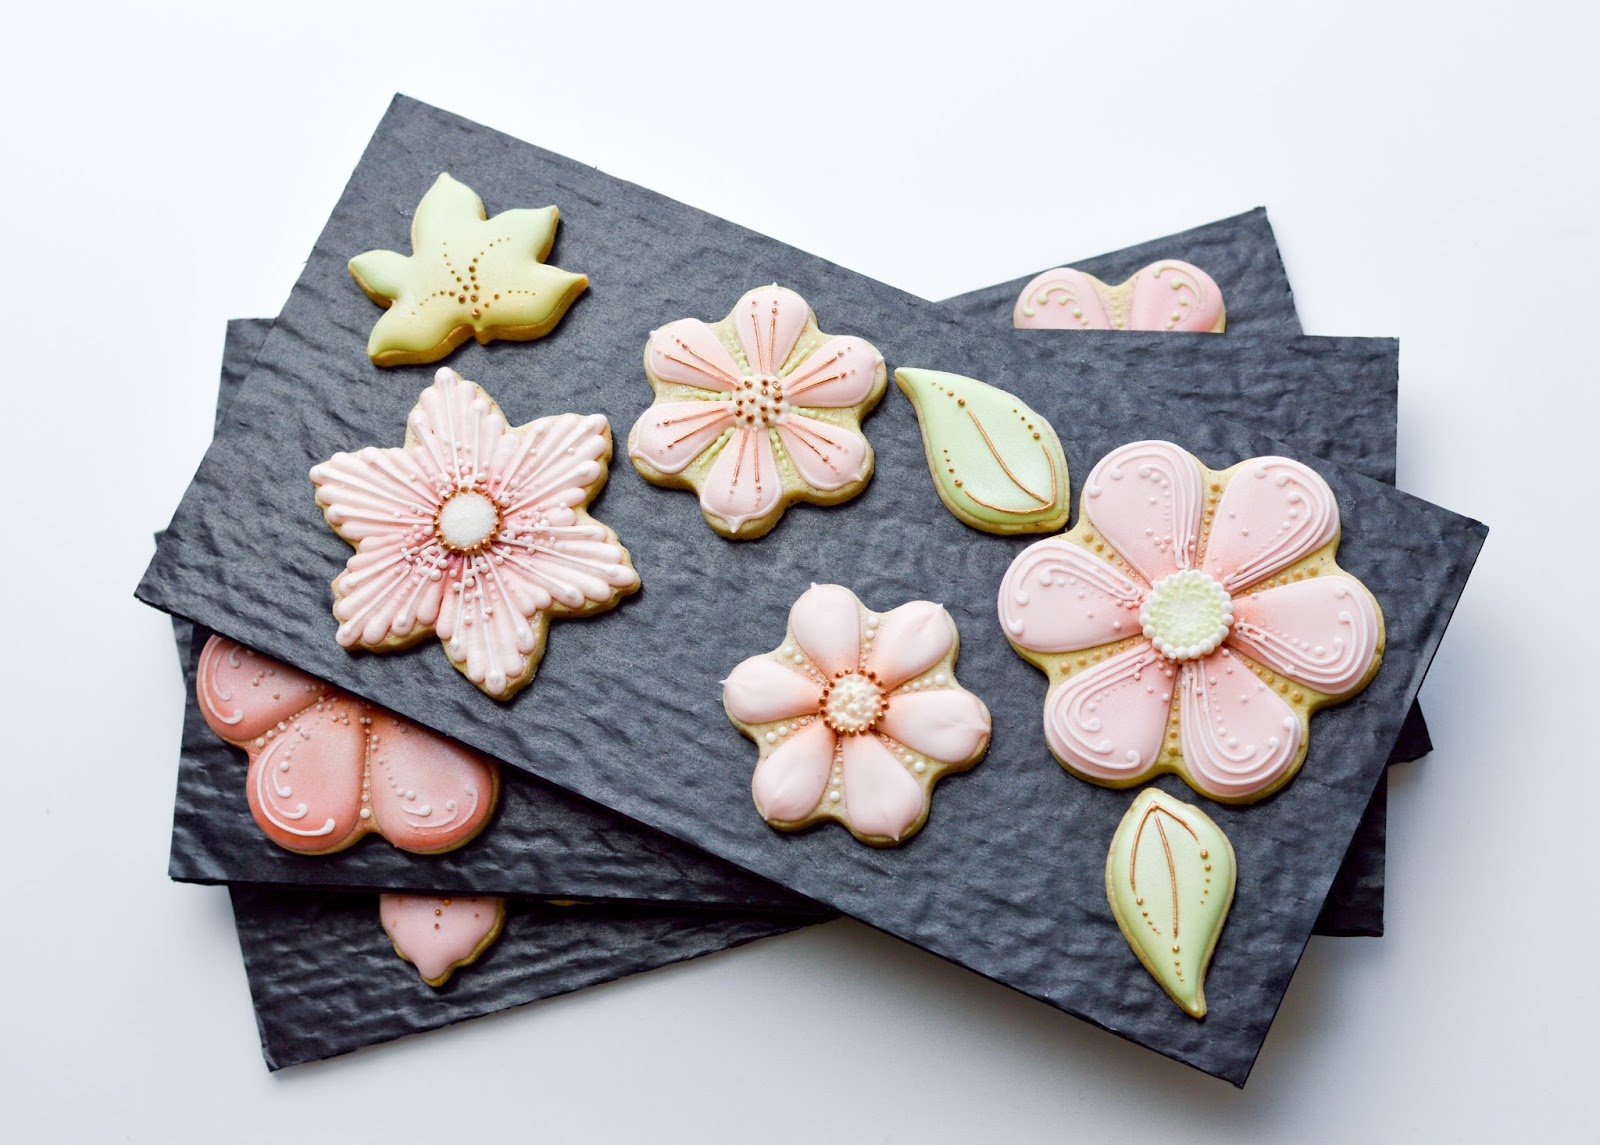 Layers of chocolate box cushion padding arranged with flower cookies, by Honeycat Cookies